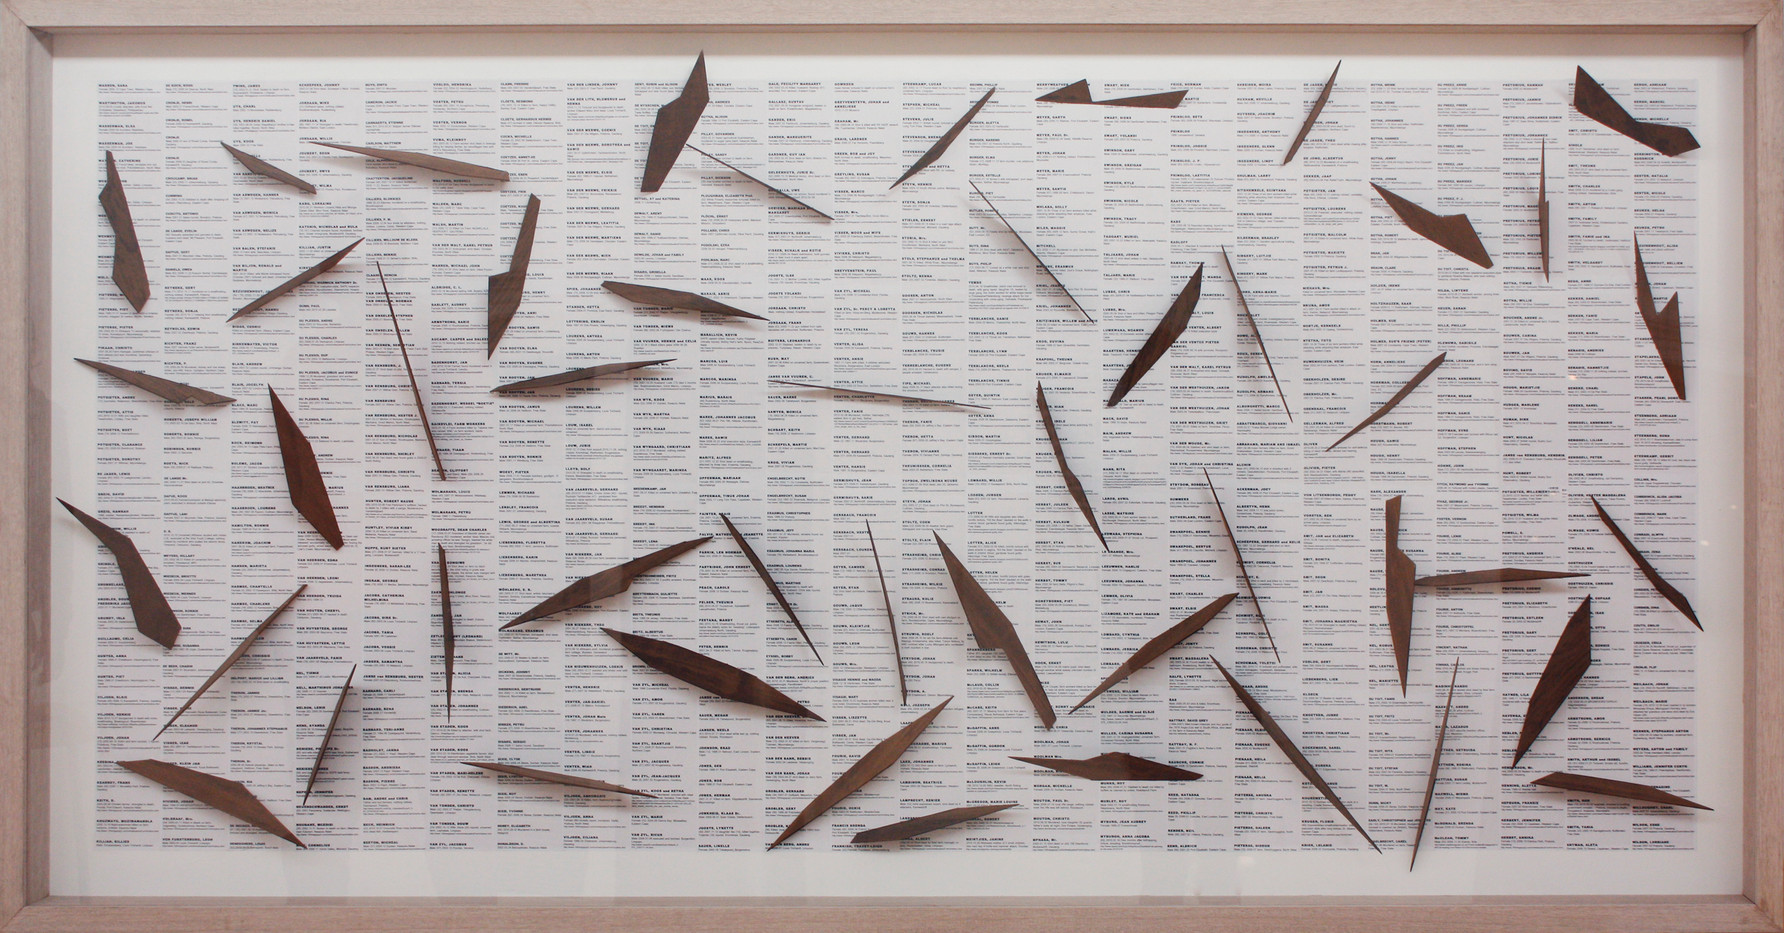 Willem Boshoff | Dubul' Ibhunu | 2011 | Paper Collage, Imbuia Wood | 126 x 248 x 11 cm